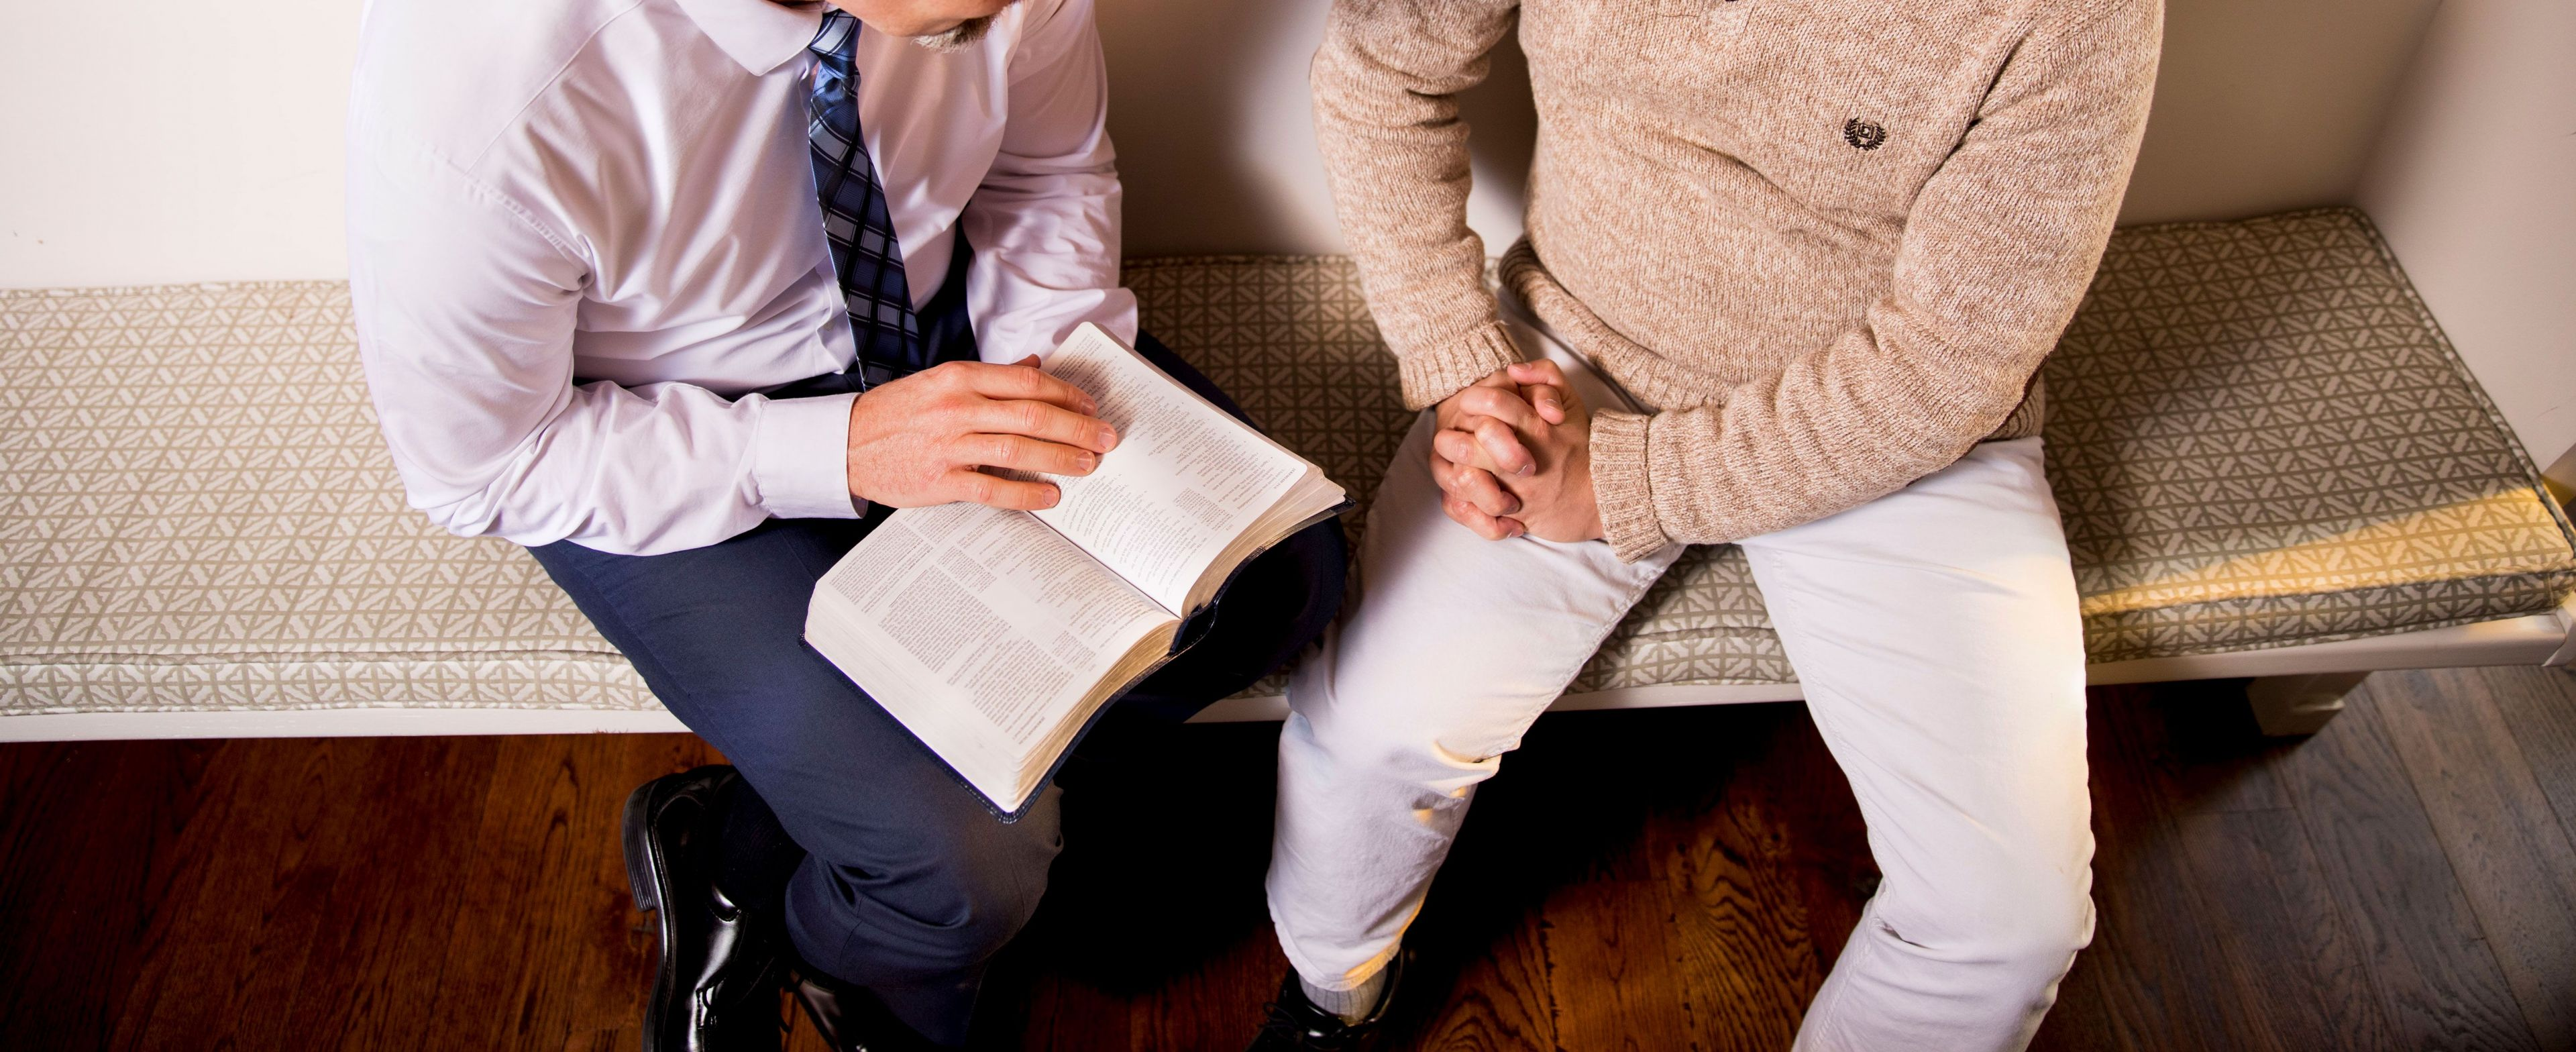 MA Pastoral Counseling Theology Online Degree Program